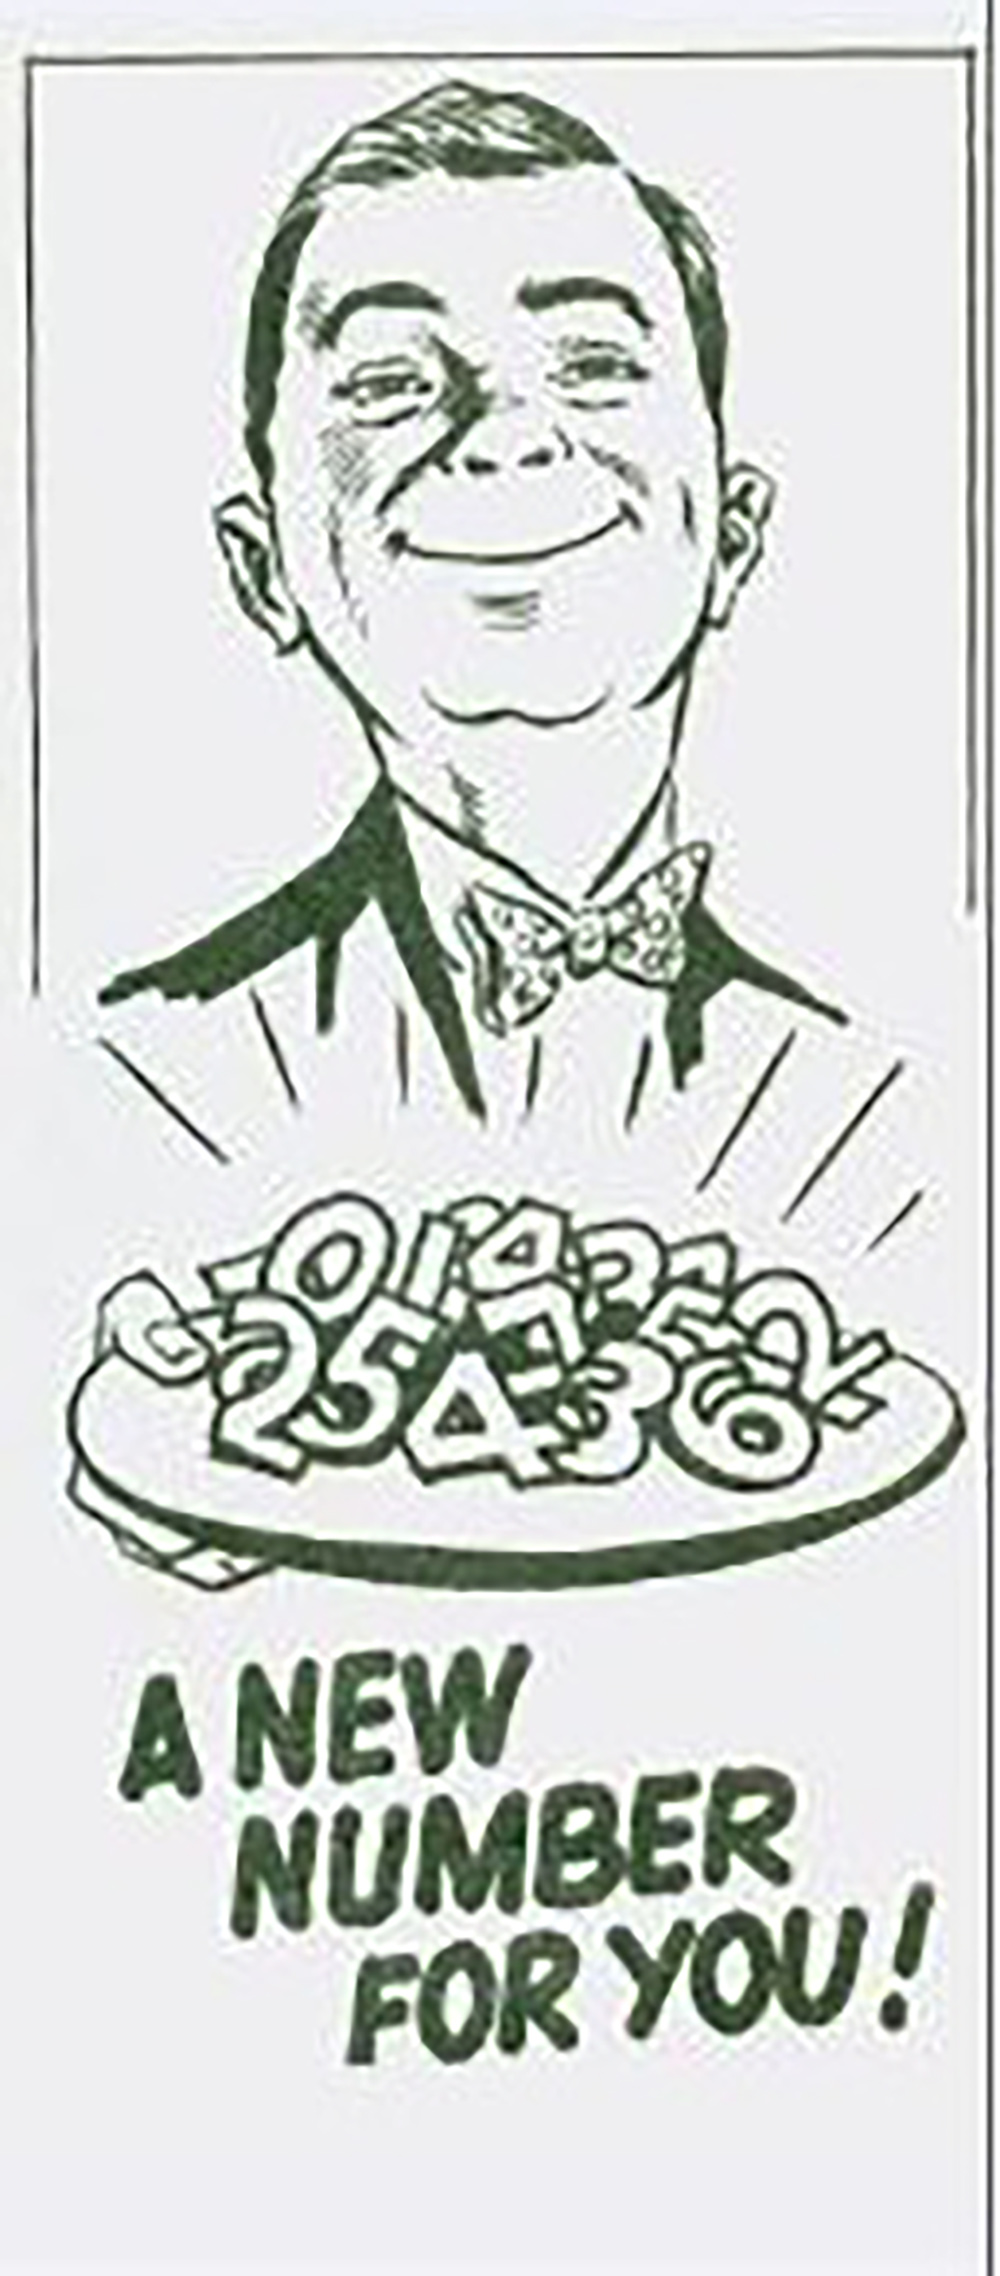 "Digital scan of publicity file from 1960s City of Halifax program to change civic address – shows a butler holding a tray of numbers with text ""A New Number for You!"""